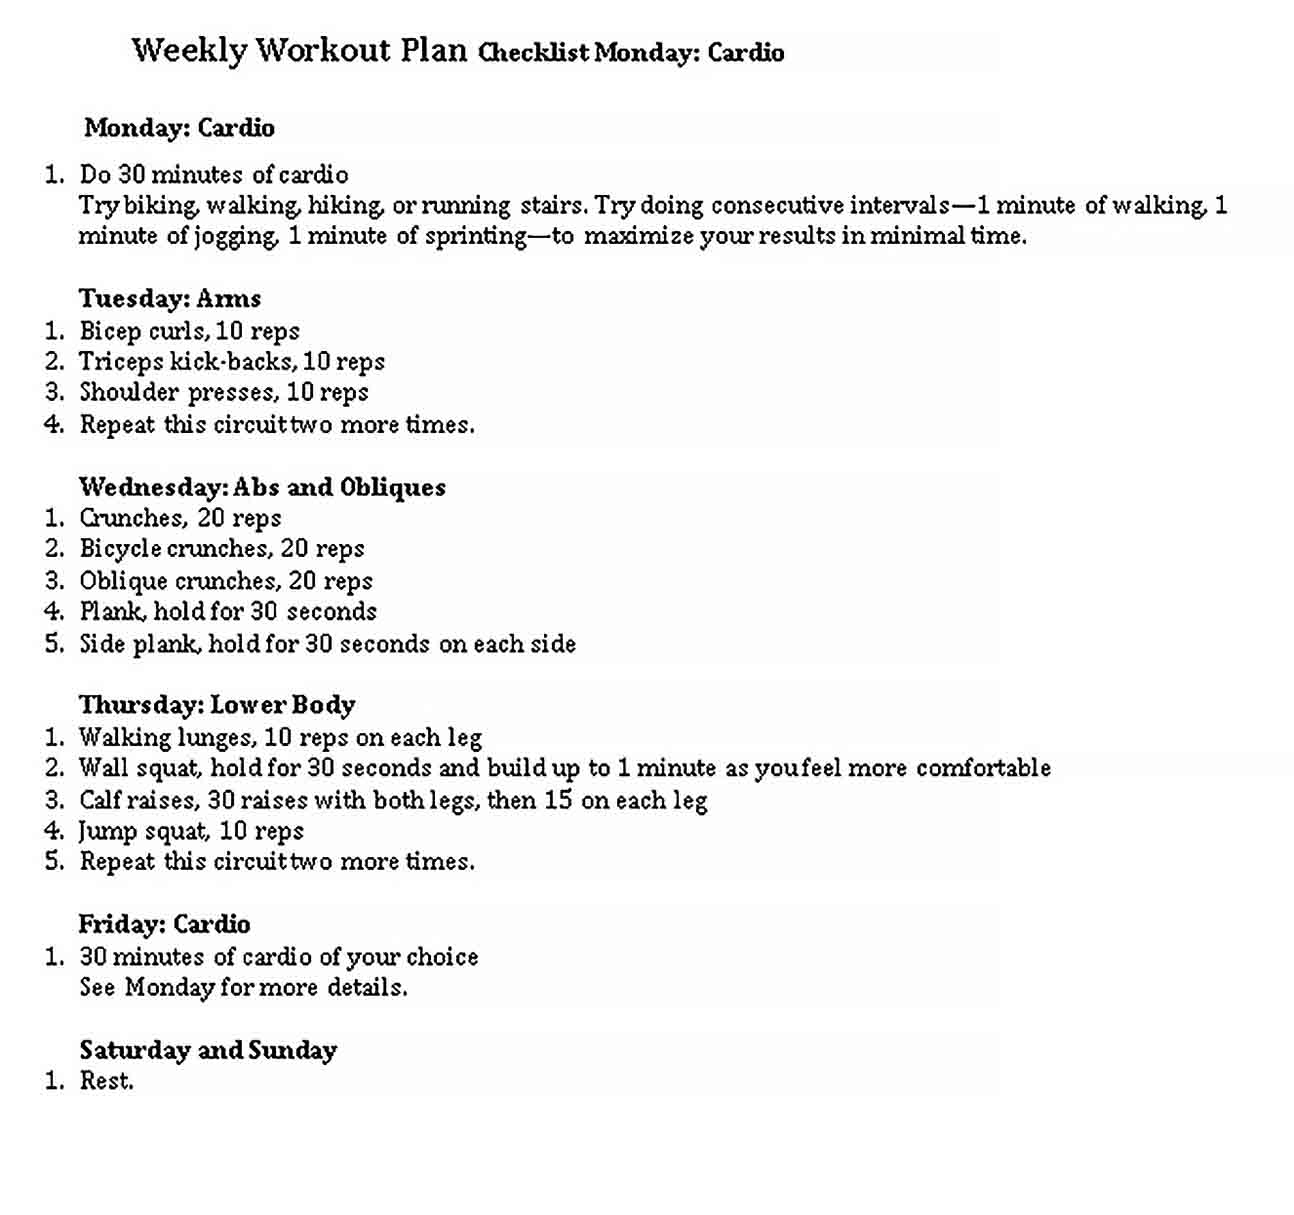 Template Weekly Workout Checklist Template